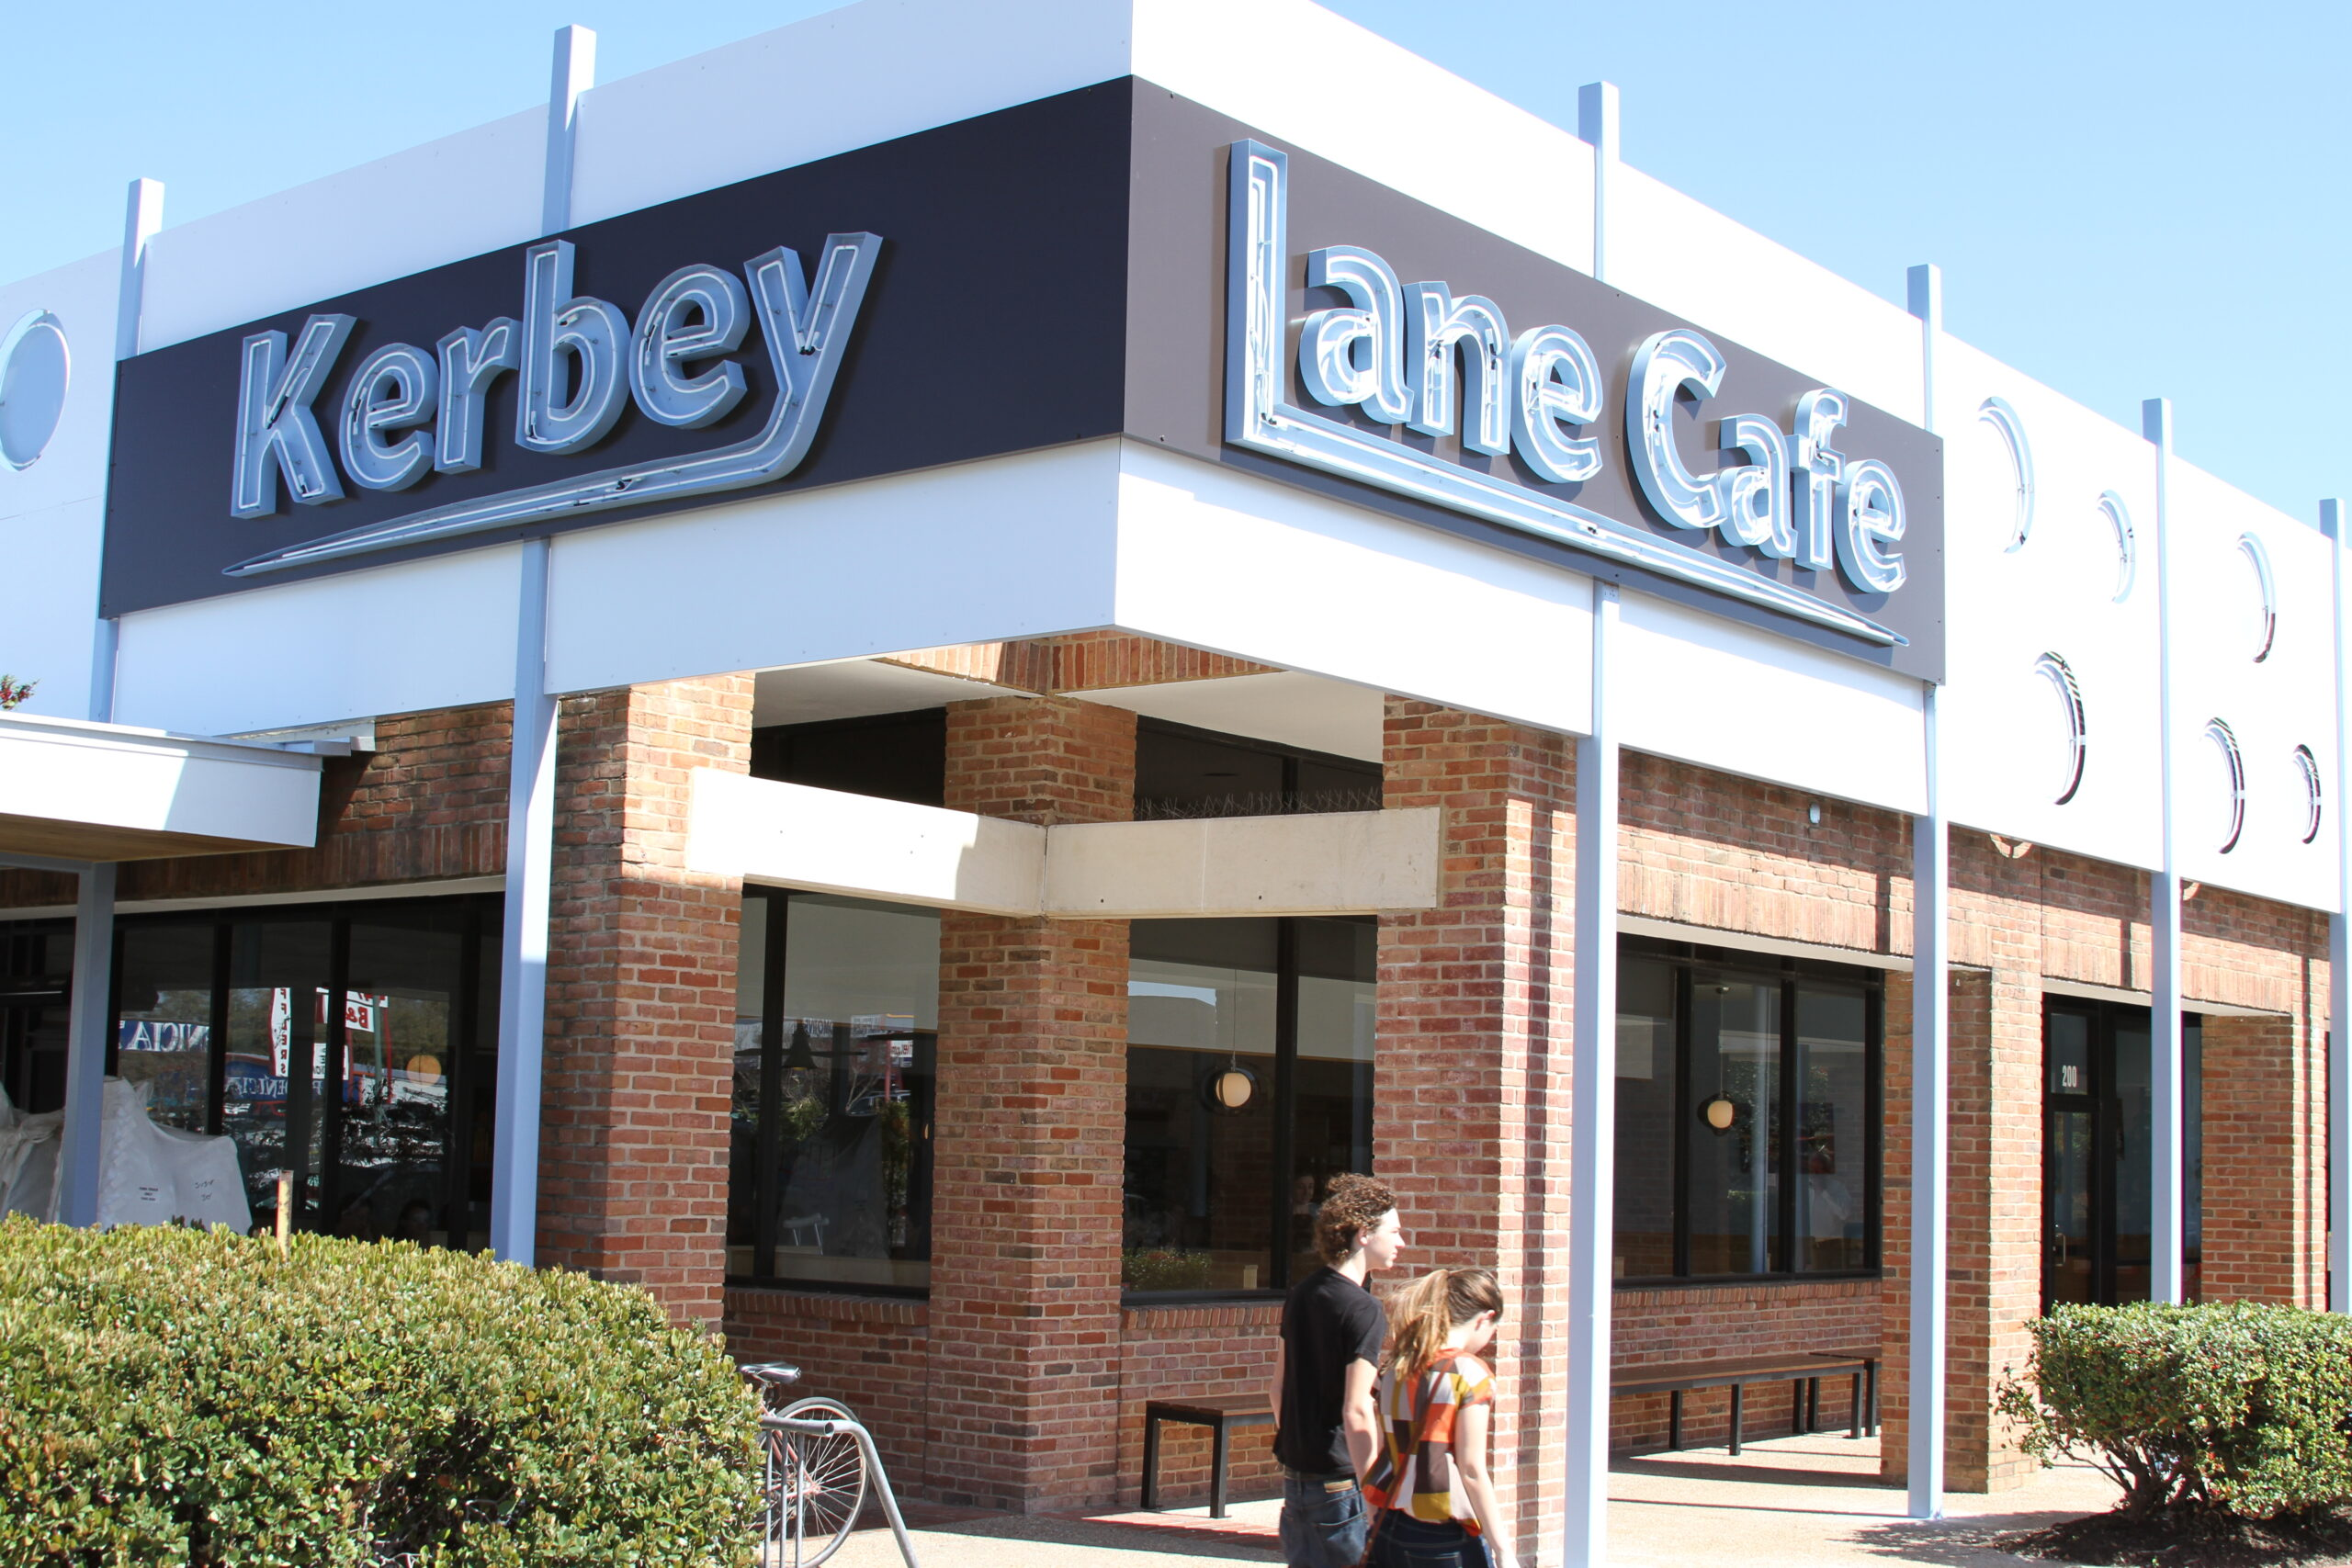 Kerbey Lane Cafe Excels Among Local Austin Restaurants